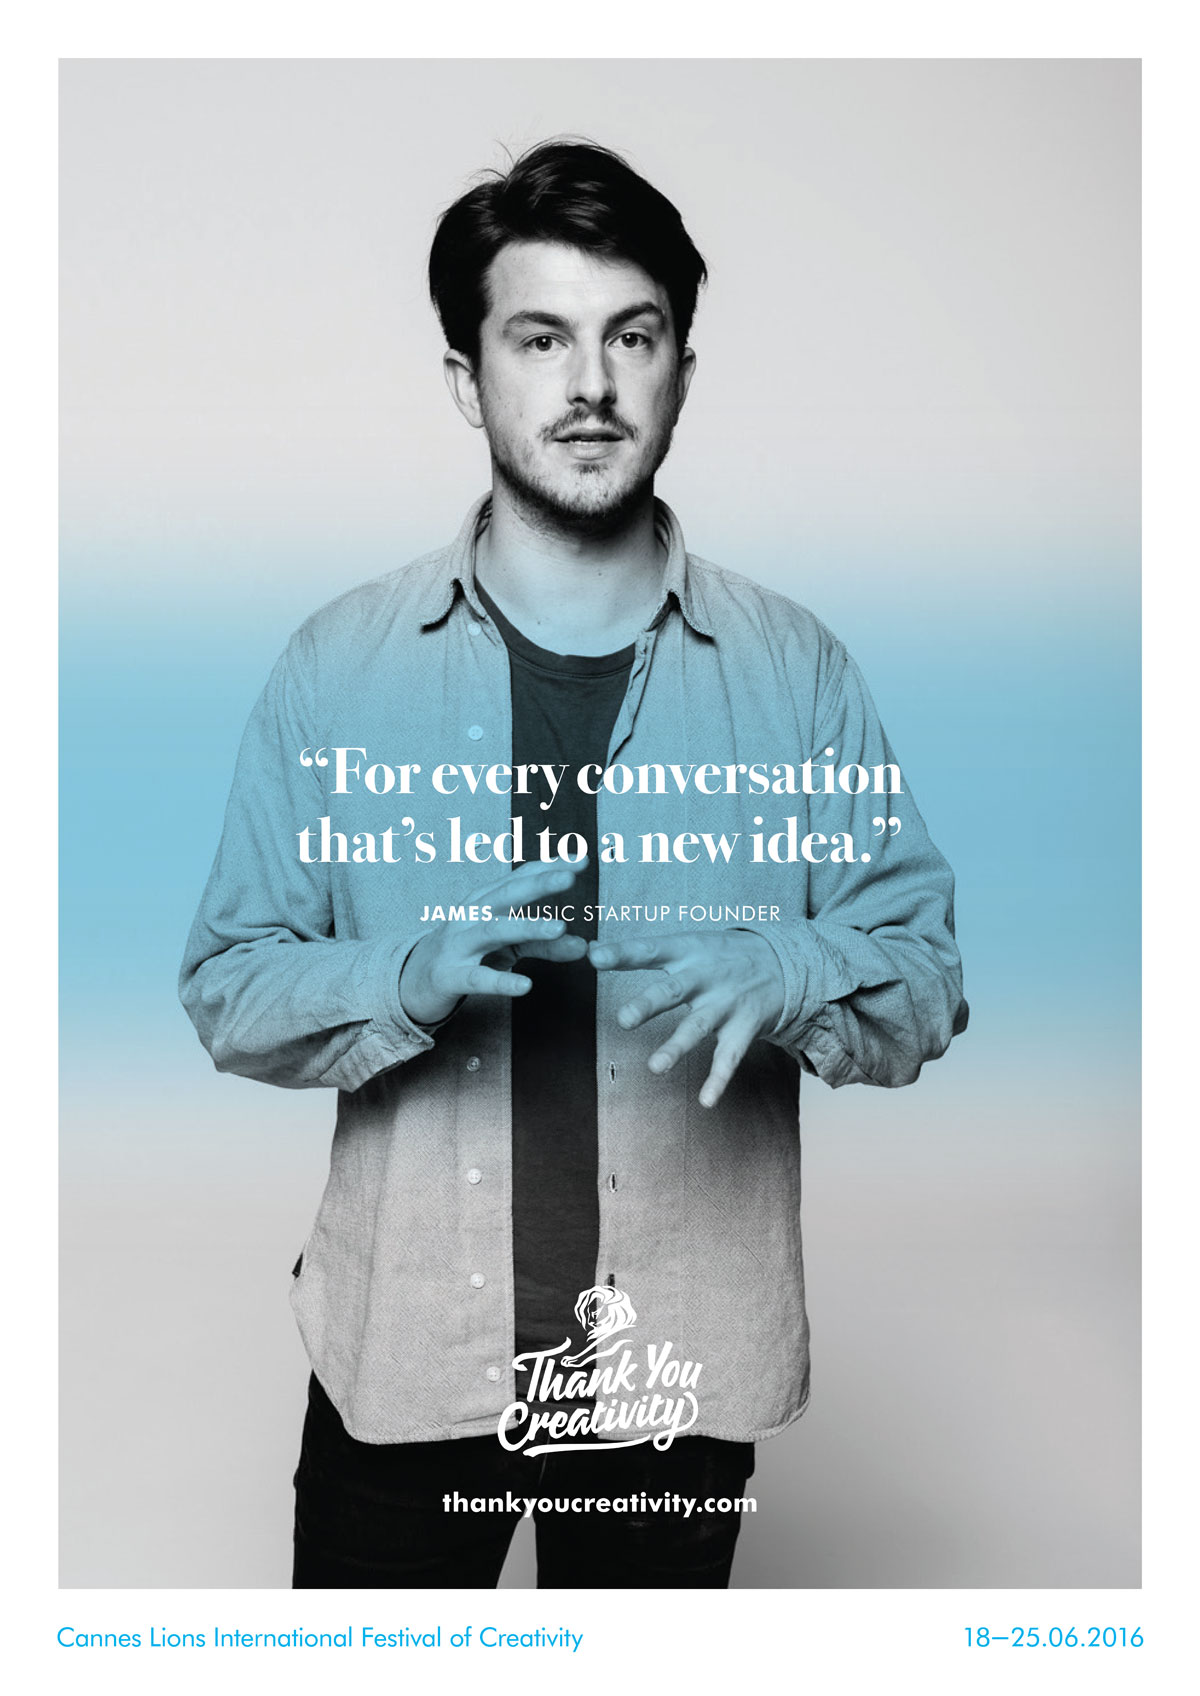 Cannes's Thank You Creativity ad campaign